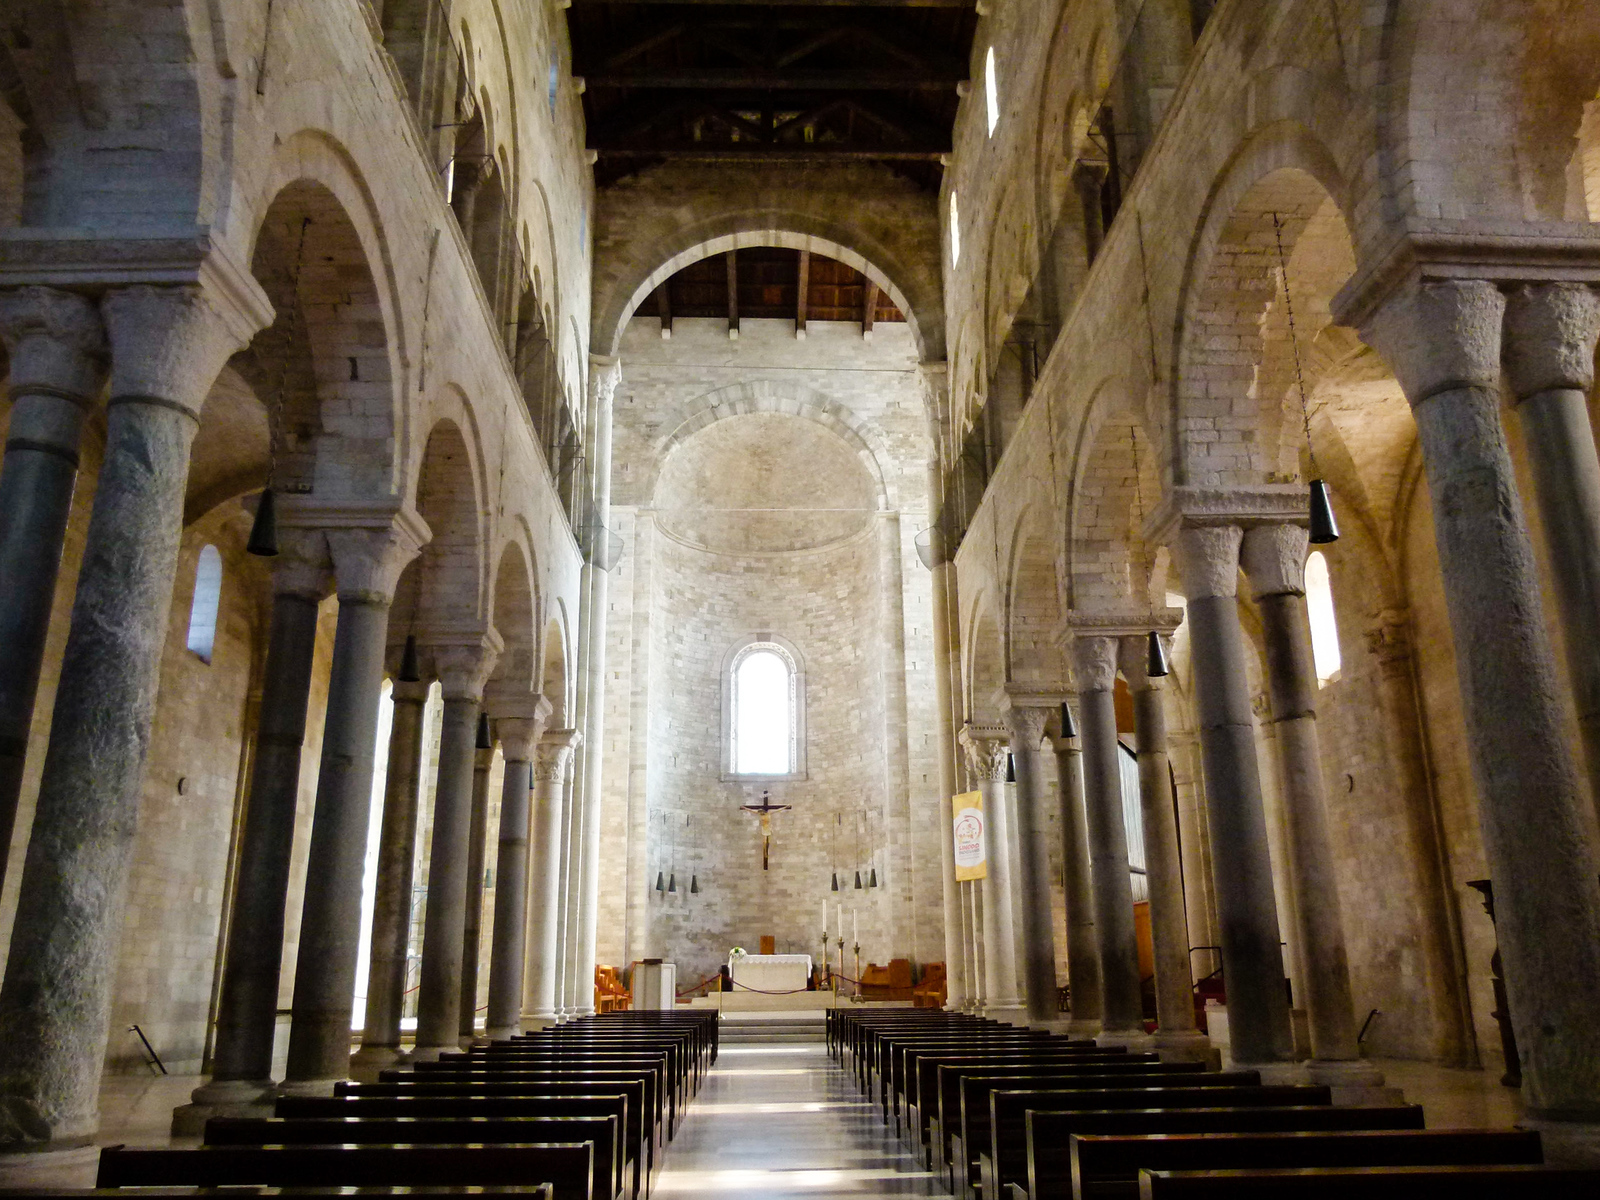 The simple,but elegant, interior of the Trani Cathedral. Be sure to include it when you visit Trani, Italy. #boomertravel #Trani #Italy